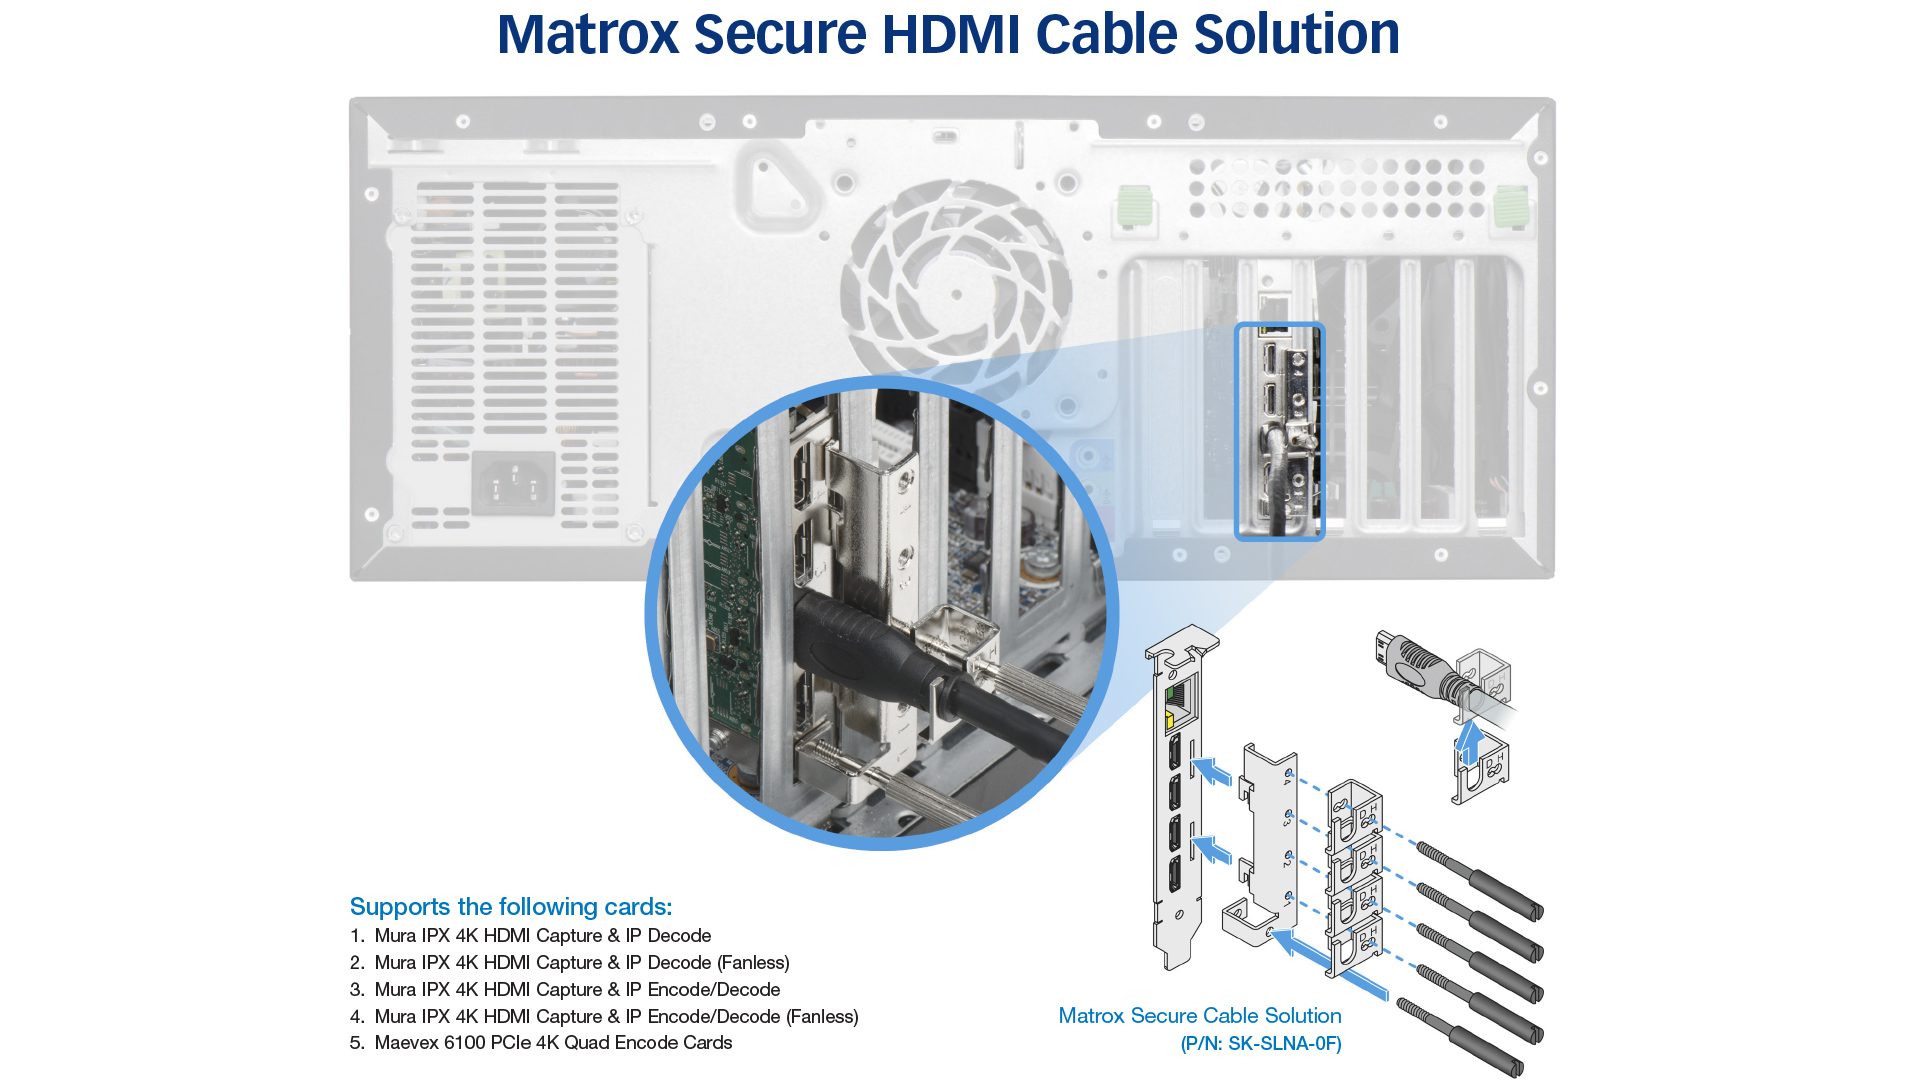 Matrox provides mechanisms to prevent loose cabling via the Matrox Secure HDMI Cable Solution to ensure physically stable and reliable platforms.